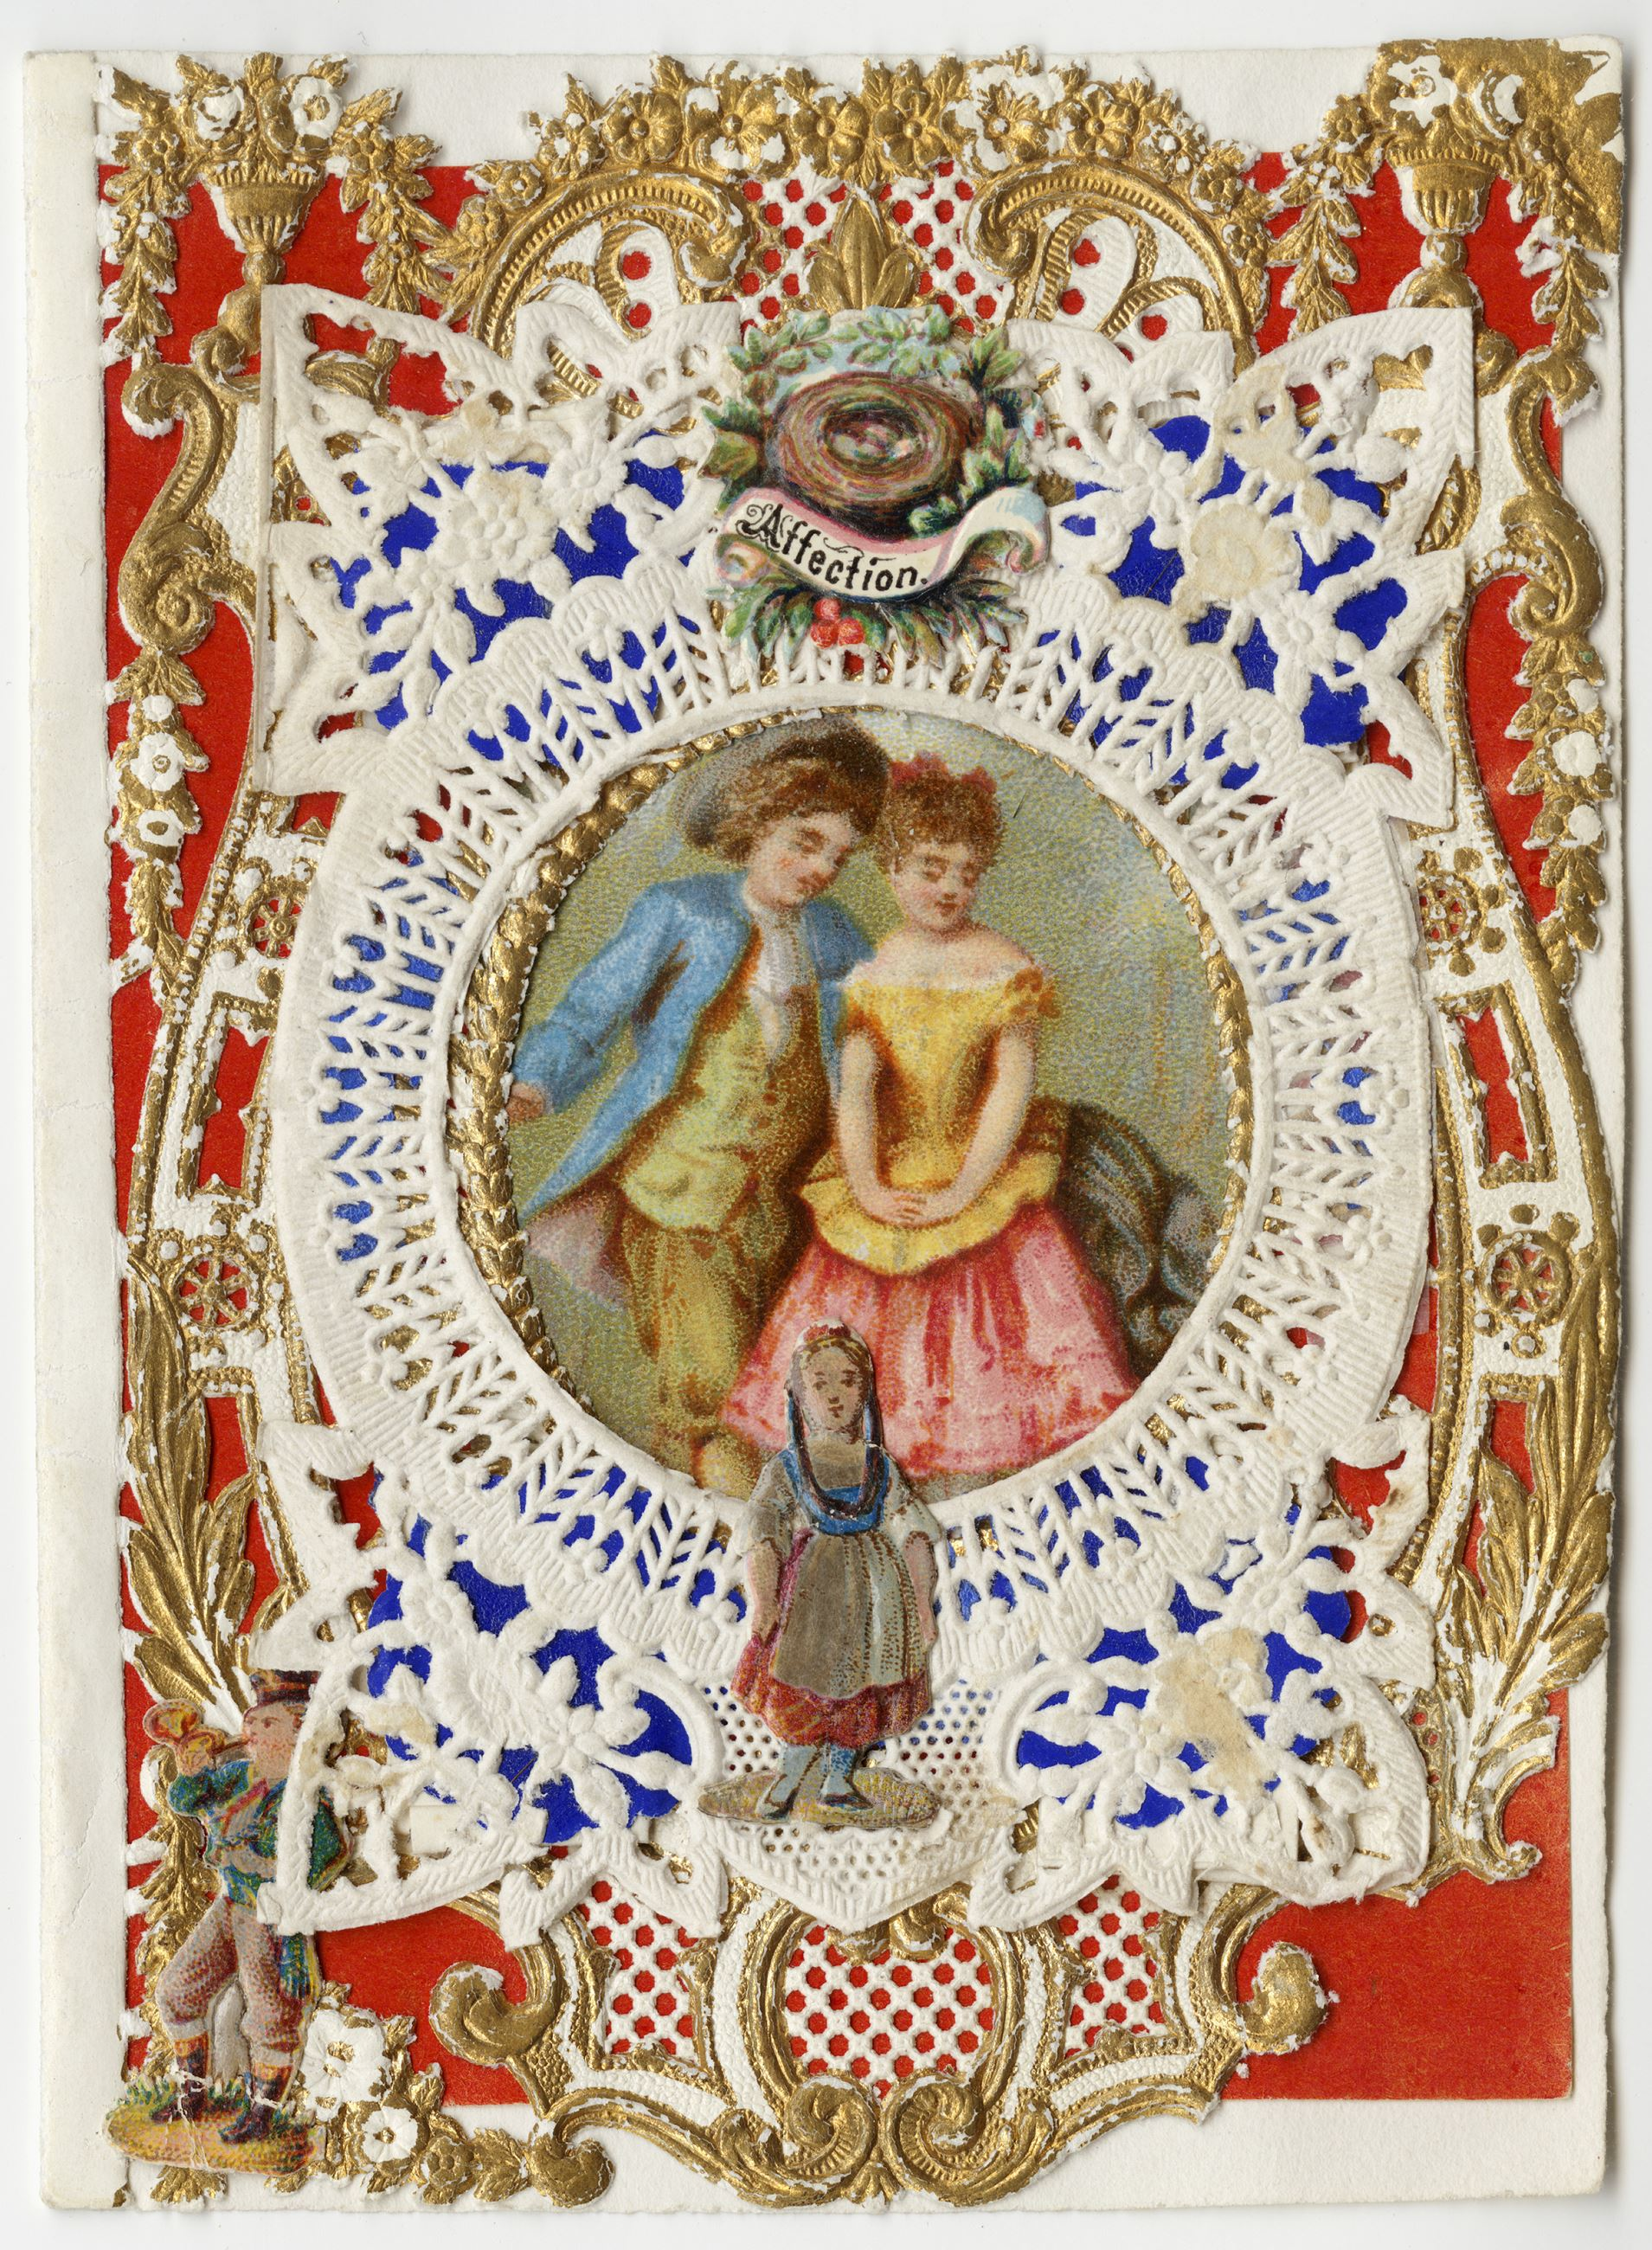 Esther_Howland_Valentine_card,__Affection__ca._1870s